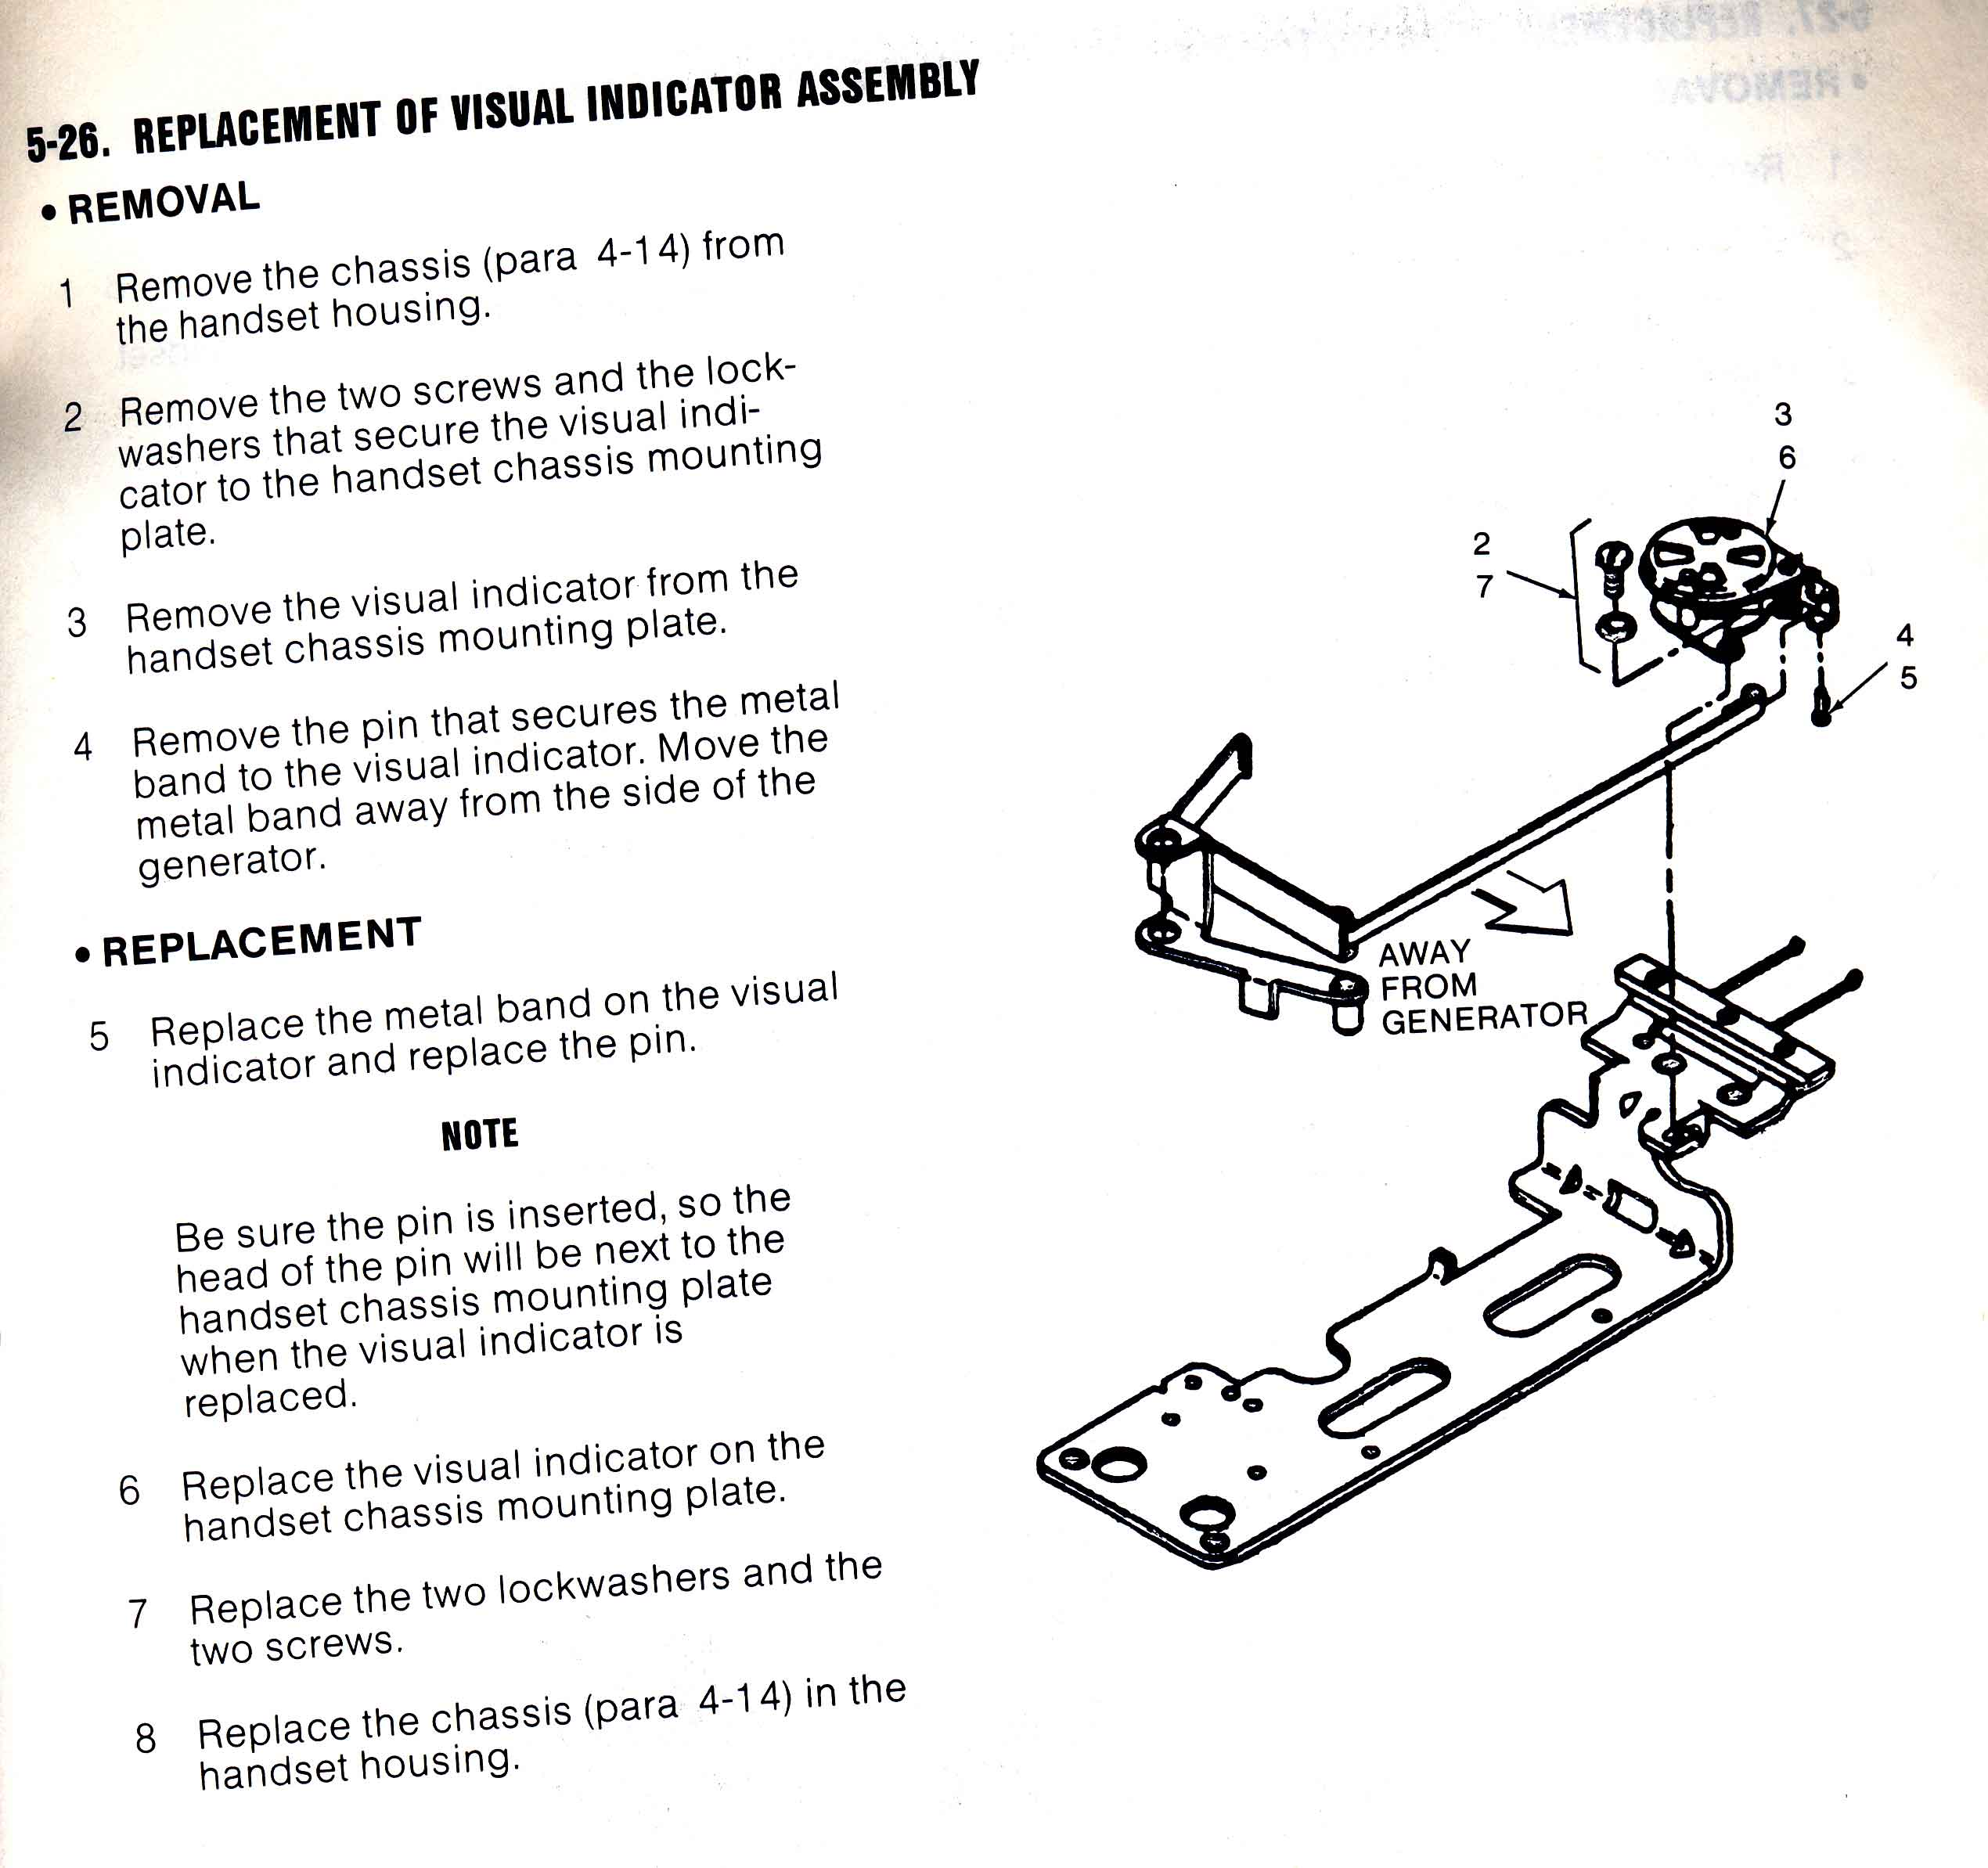 Visual Indicator disassembly instructions